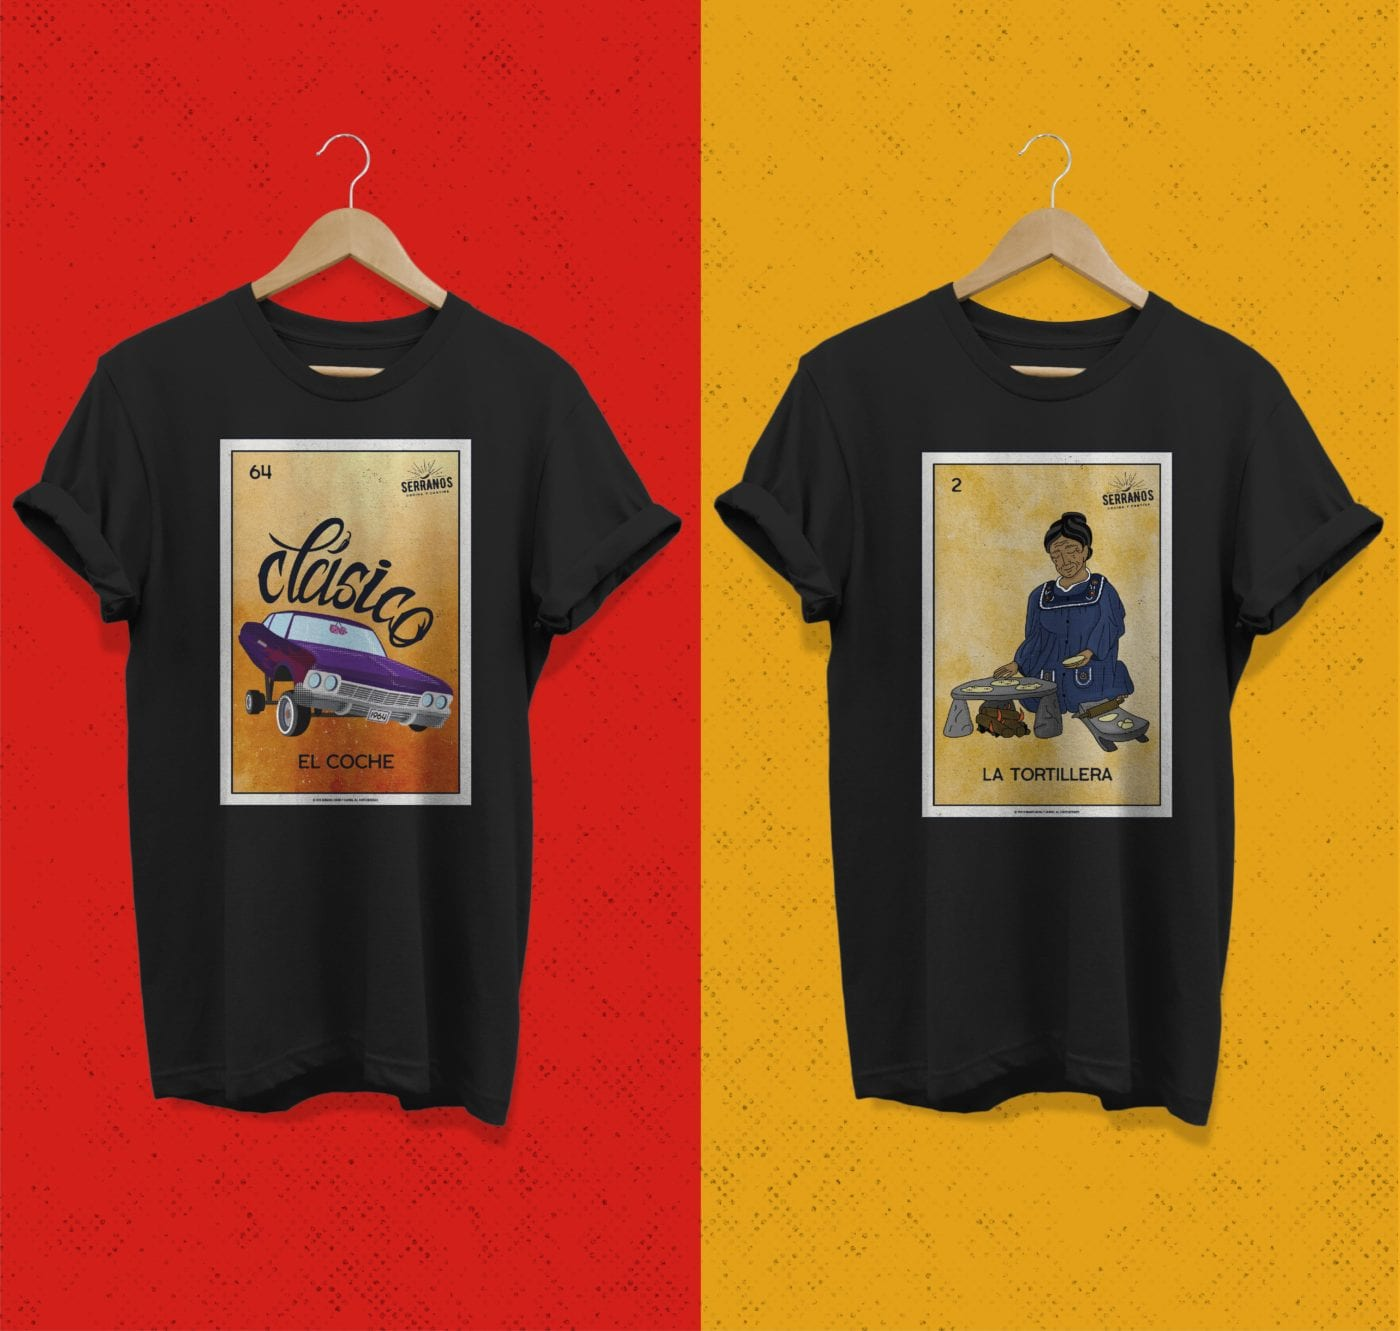 Serranos Loteria Shirts Clasico and la Tortillera